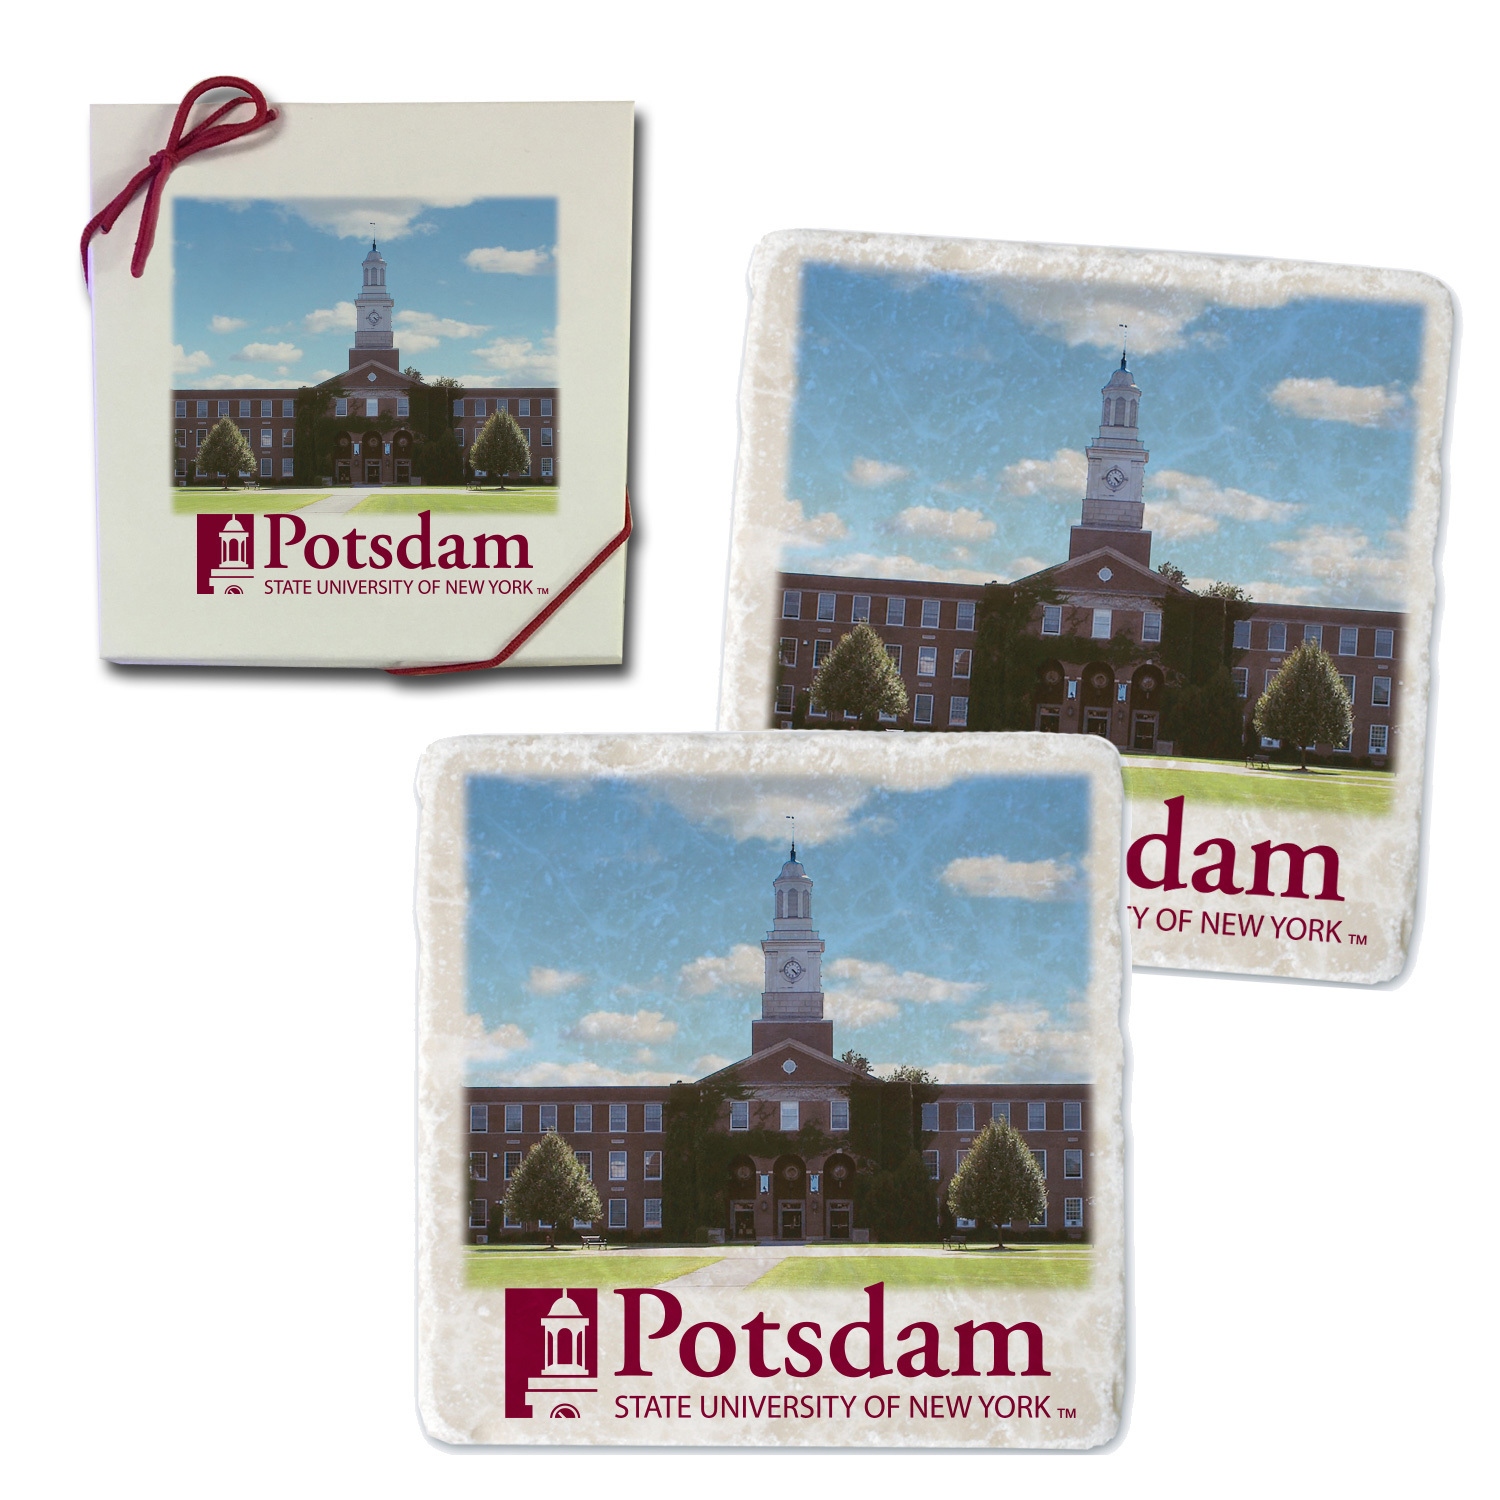 Image For COASTER SET WITH SATERLEE PHOTO AND CLOCK TOWER